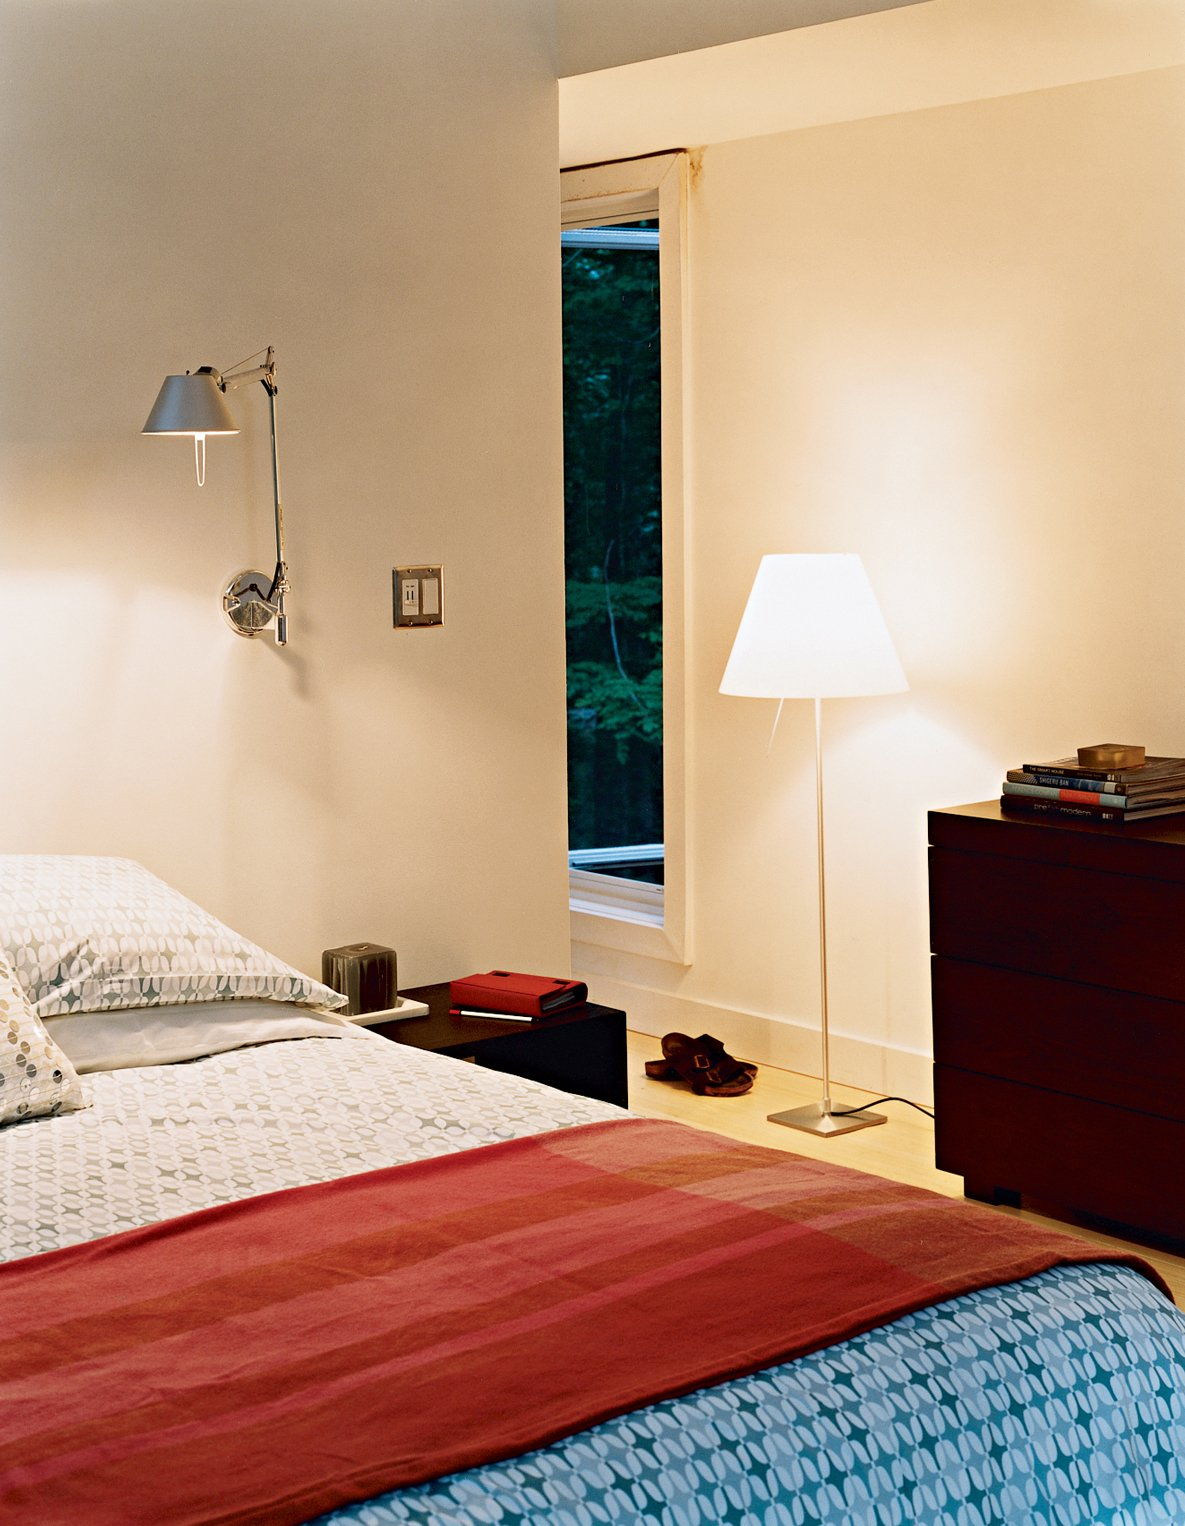 The master bedroom has a number of windows in varying shapes and sizes, providing unique views to the woods outside. The bed, chest of drawers, side tables, and geometric linens are all from West Elm. The Tolomeo wall lamps are by Artemide. Prefab, Proven - Photo 6 of 12